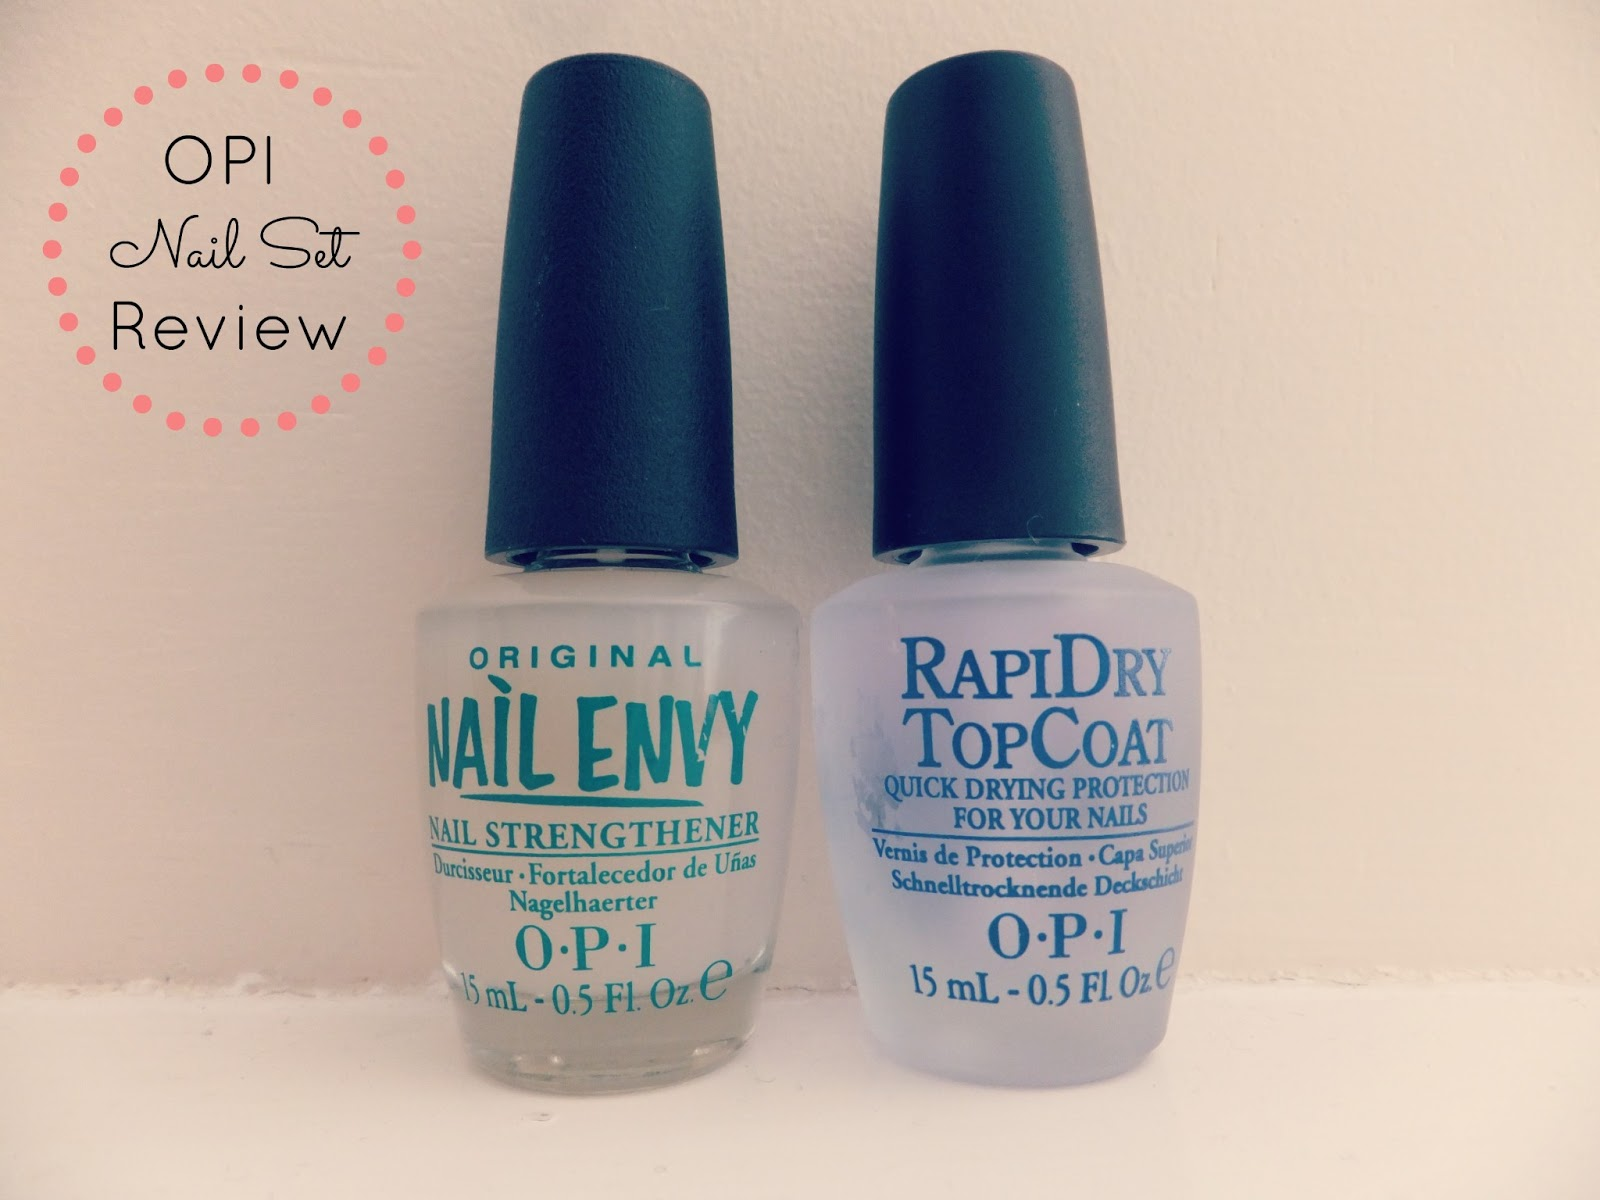 Fern & Blush: Review | OPI Original Nail Envy & RapiDry Top Coat